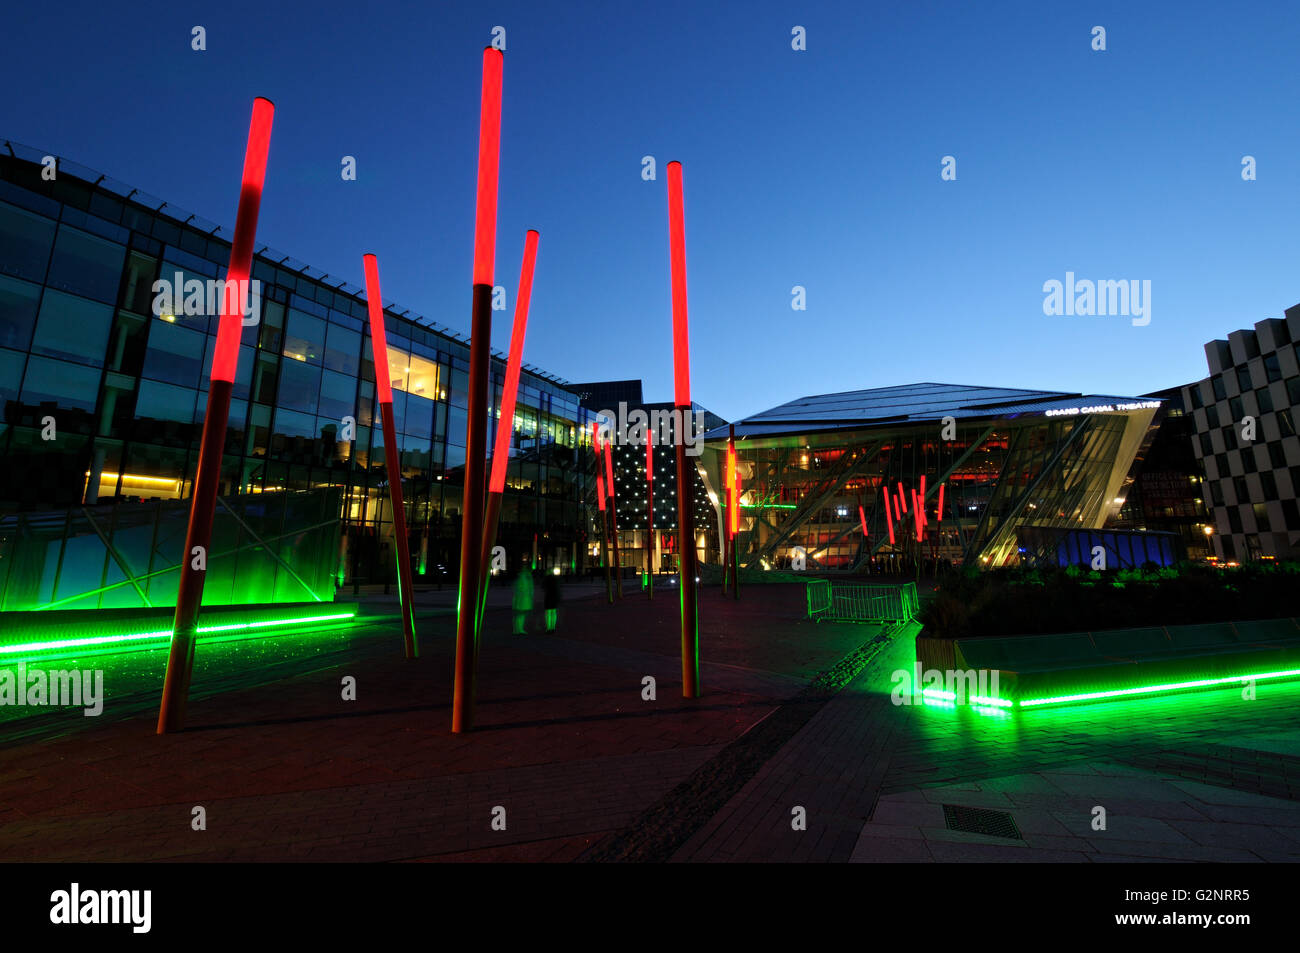 The Bord Gáis Energy Theatre formerly opened as Grand Canal Theatre at night in Dublin, Ireland Stock Photo